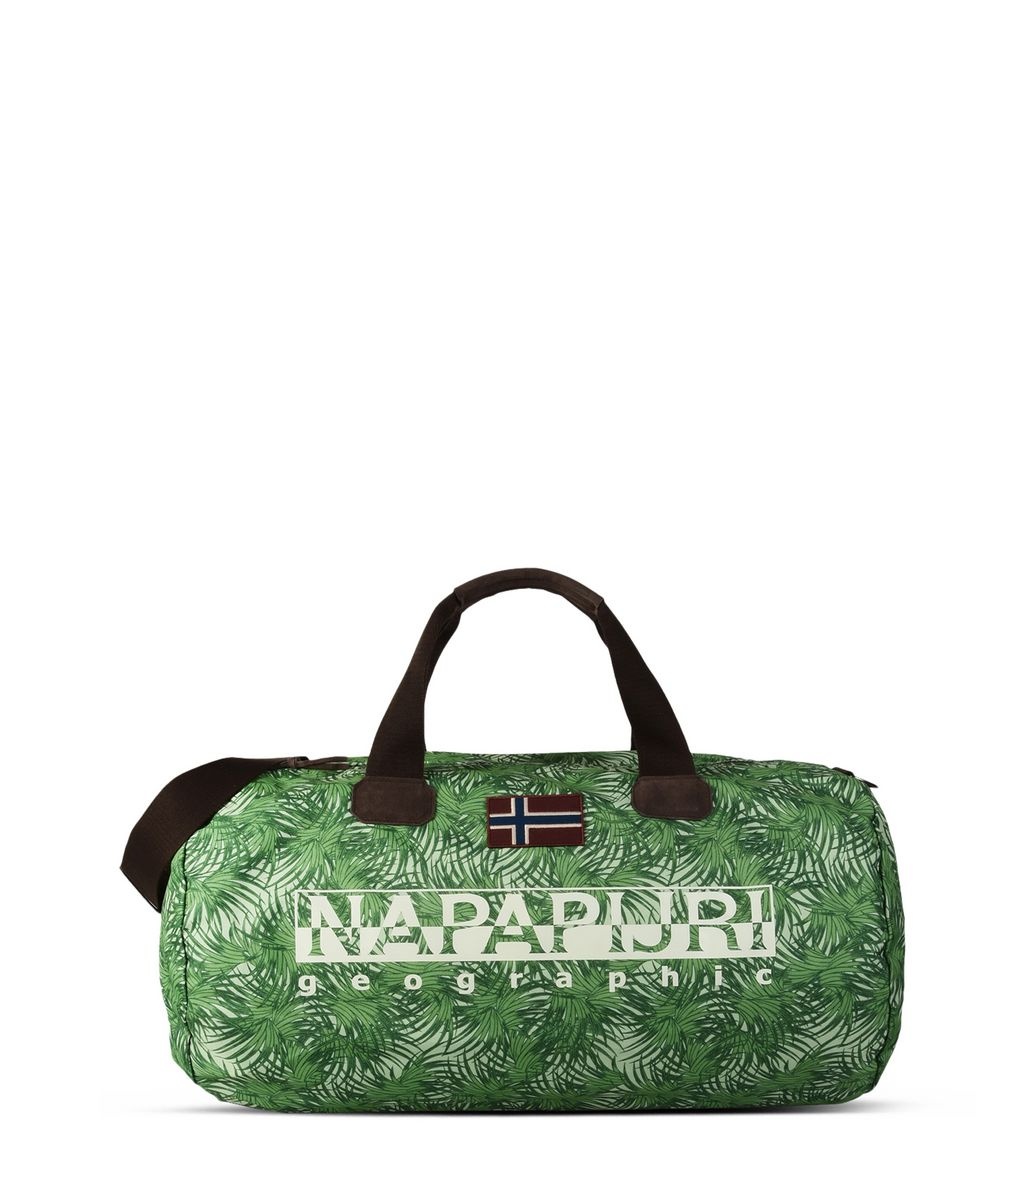 NAPAPIJRI BERING PRINT EXCLUSIVE  TRAVEL BAG,GREEN